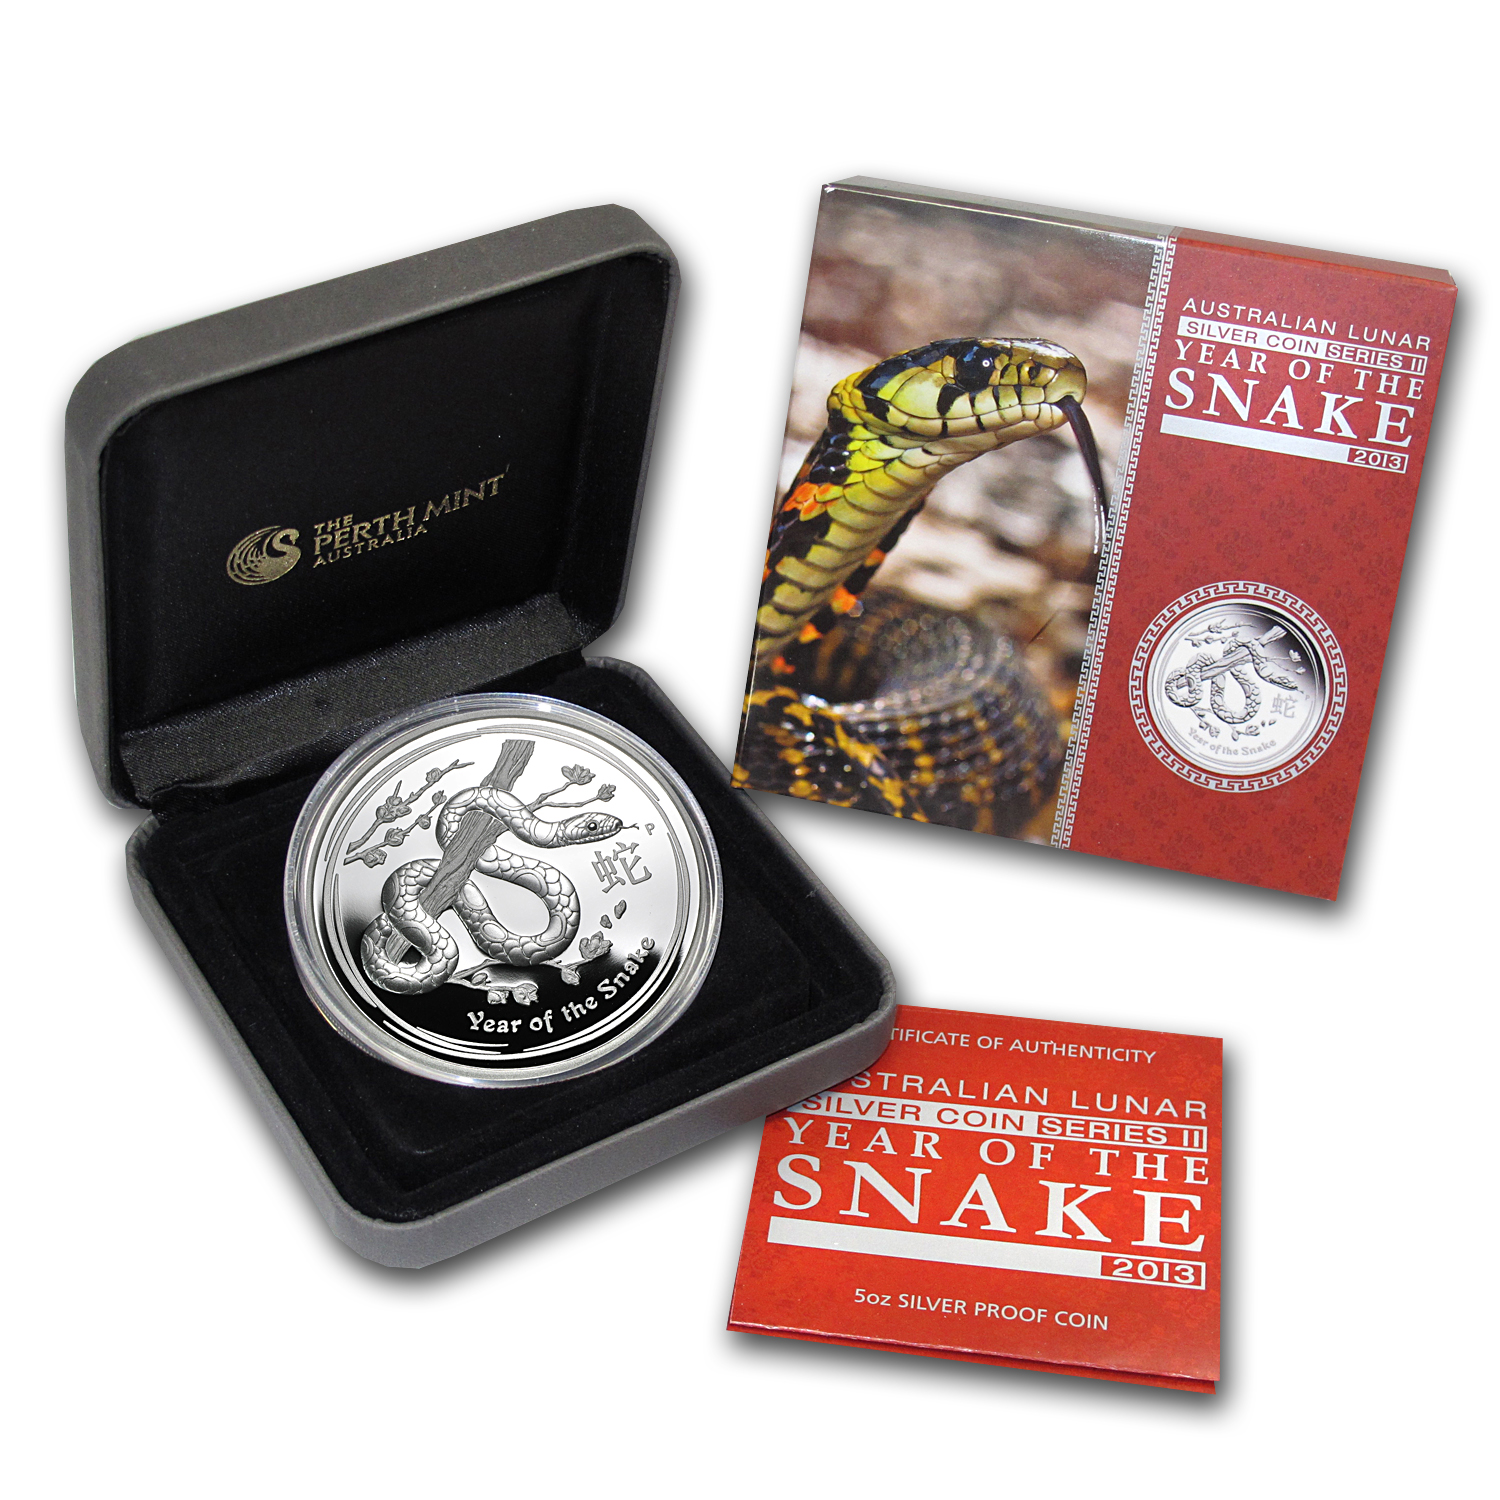 2013 Year of the Snake - 5 oz Proof Silver Coin (Series II)